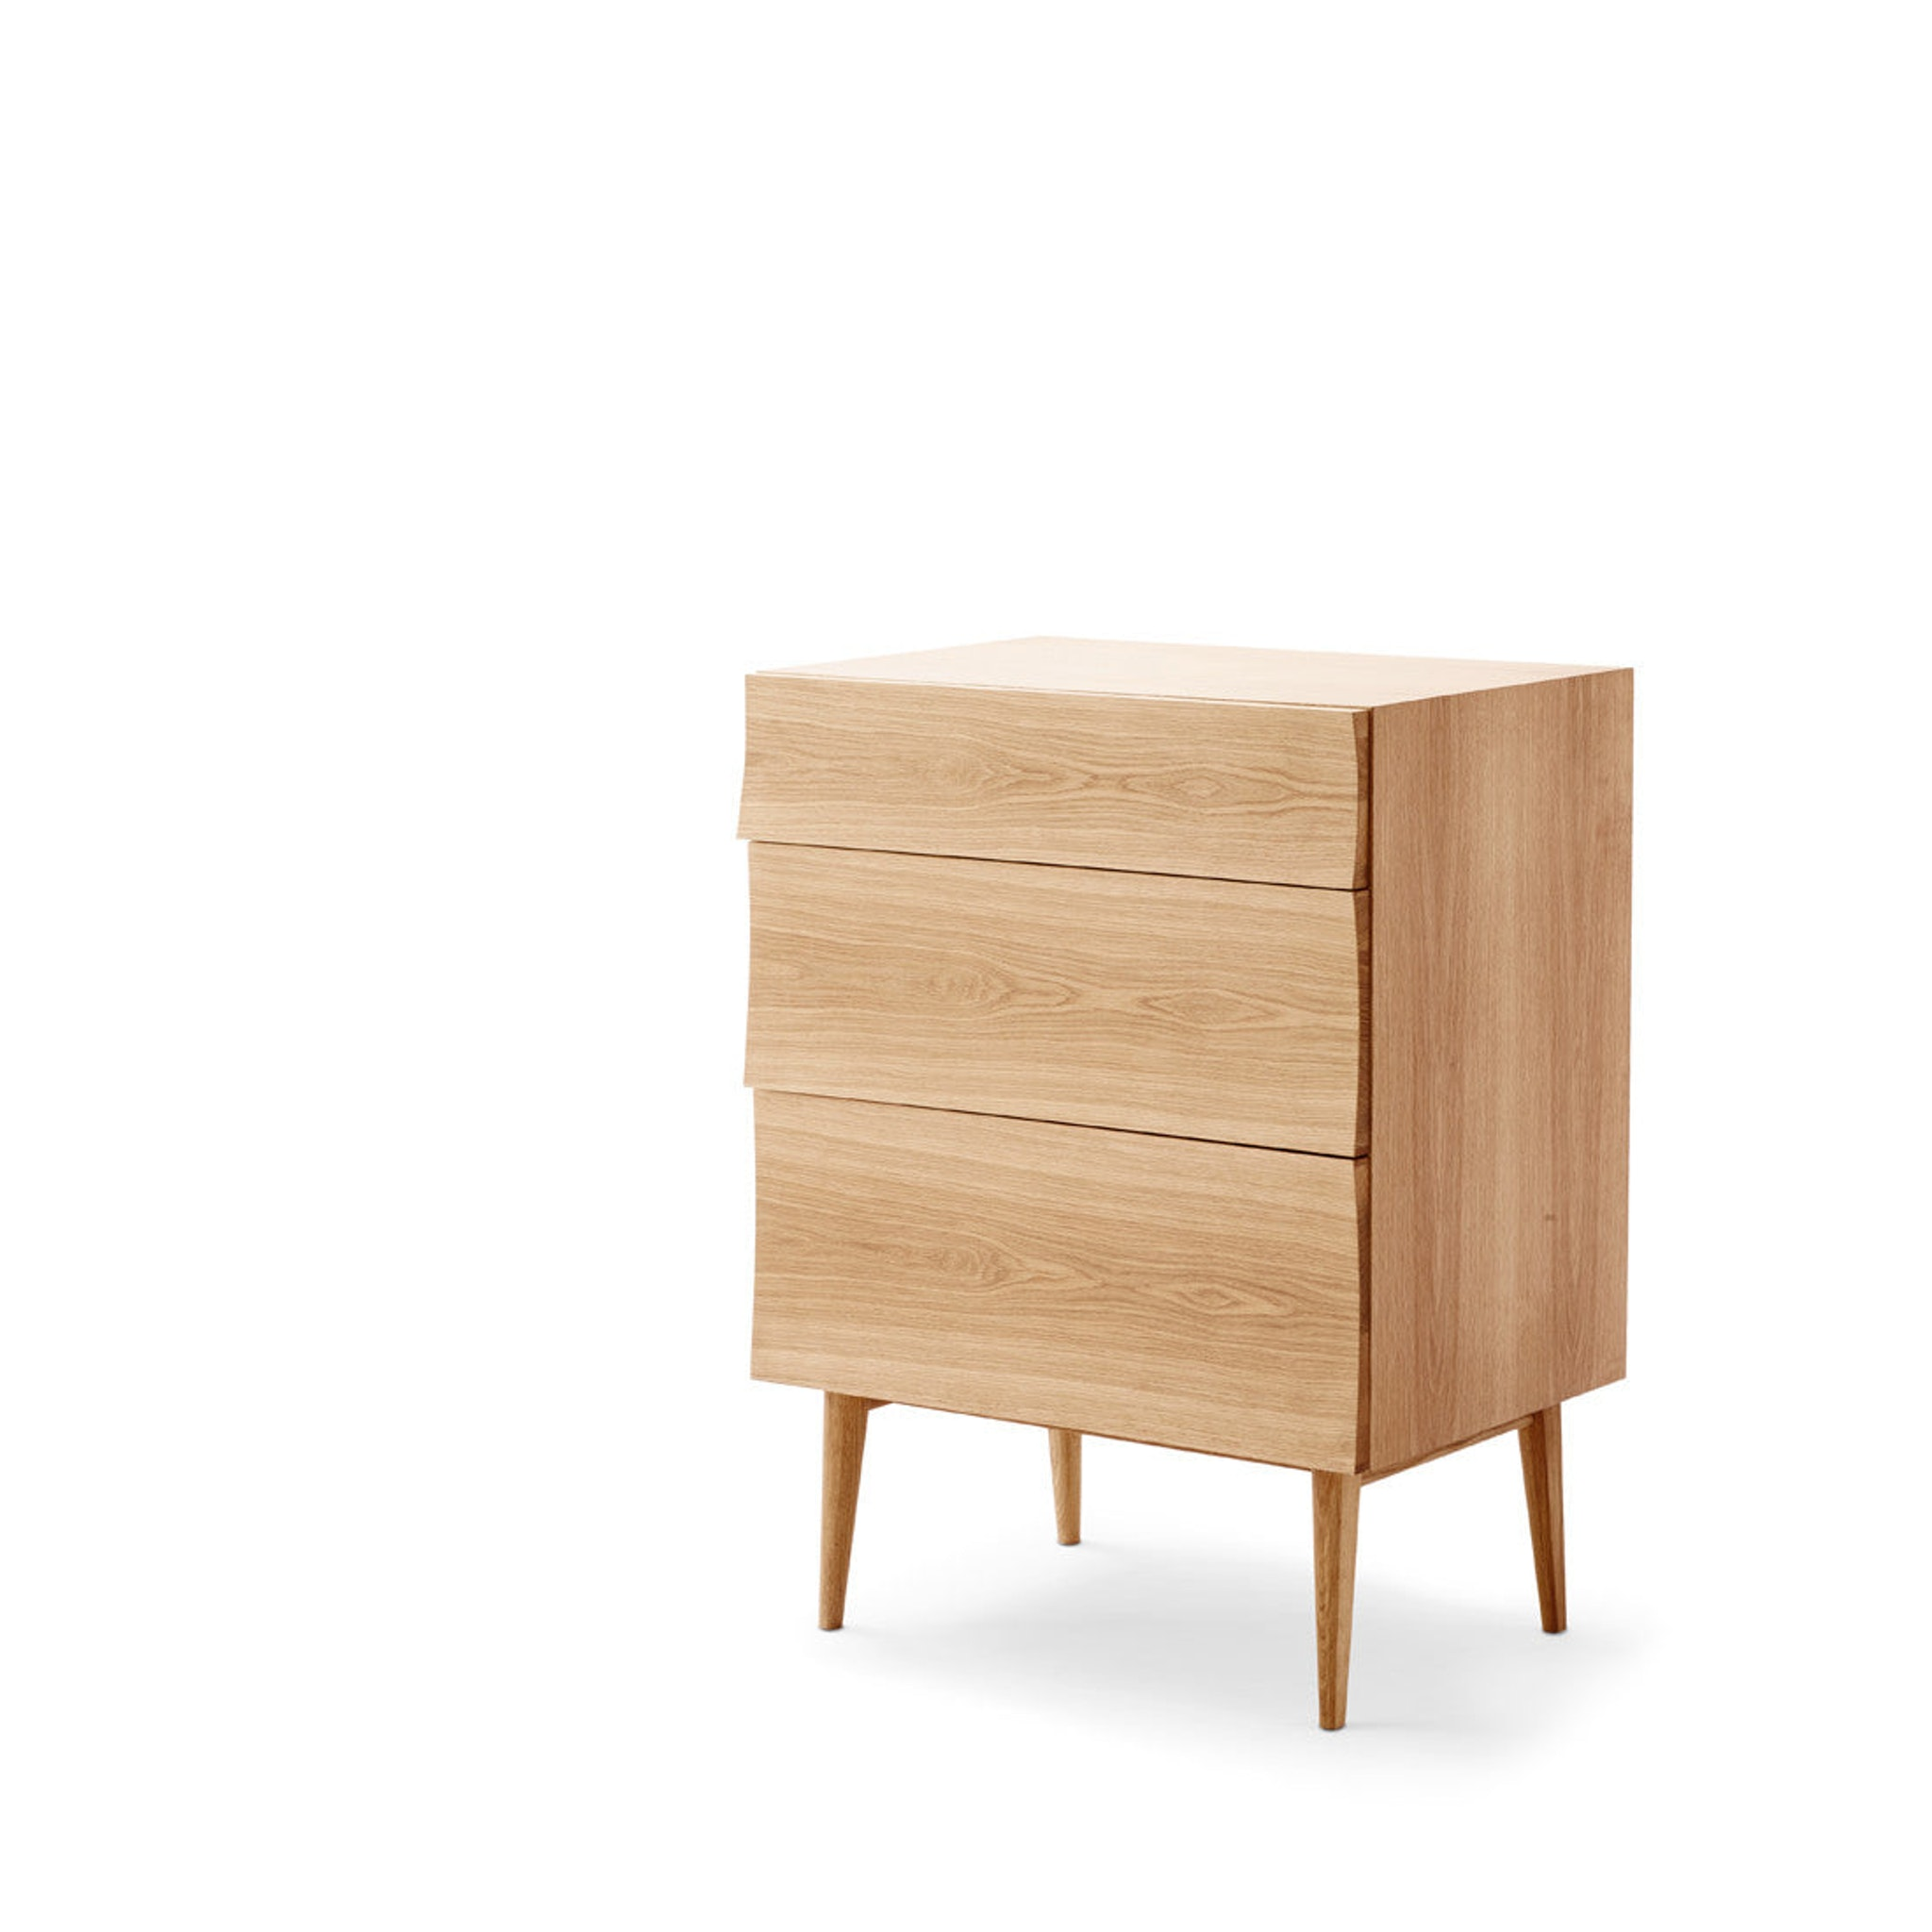 Reflect Drawers by Soren Rose Studio, Muuto